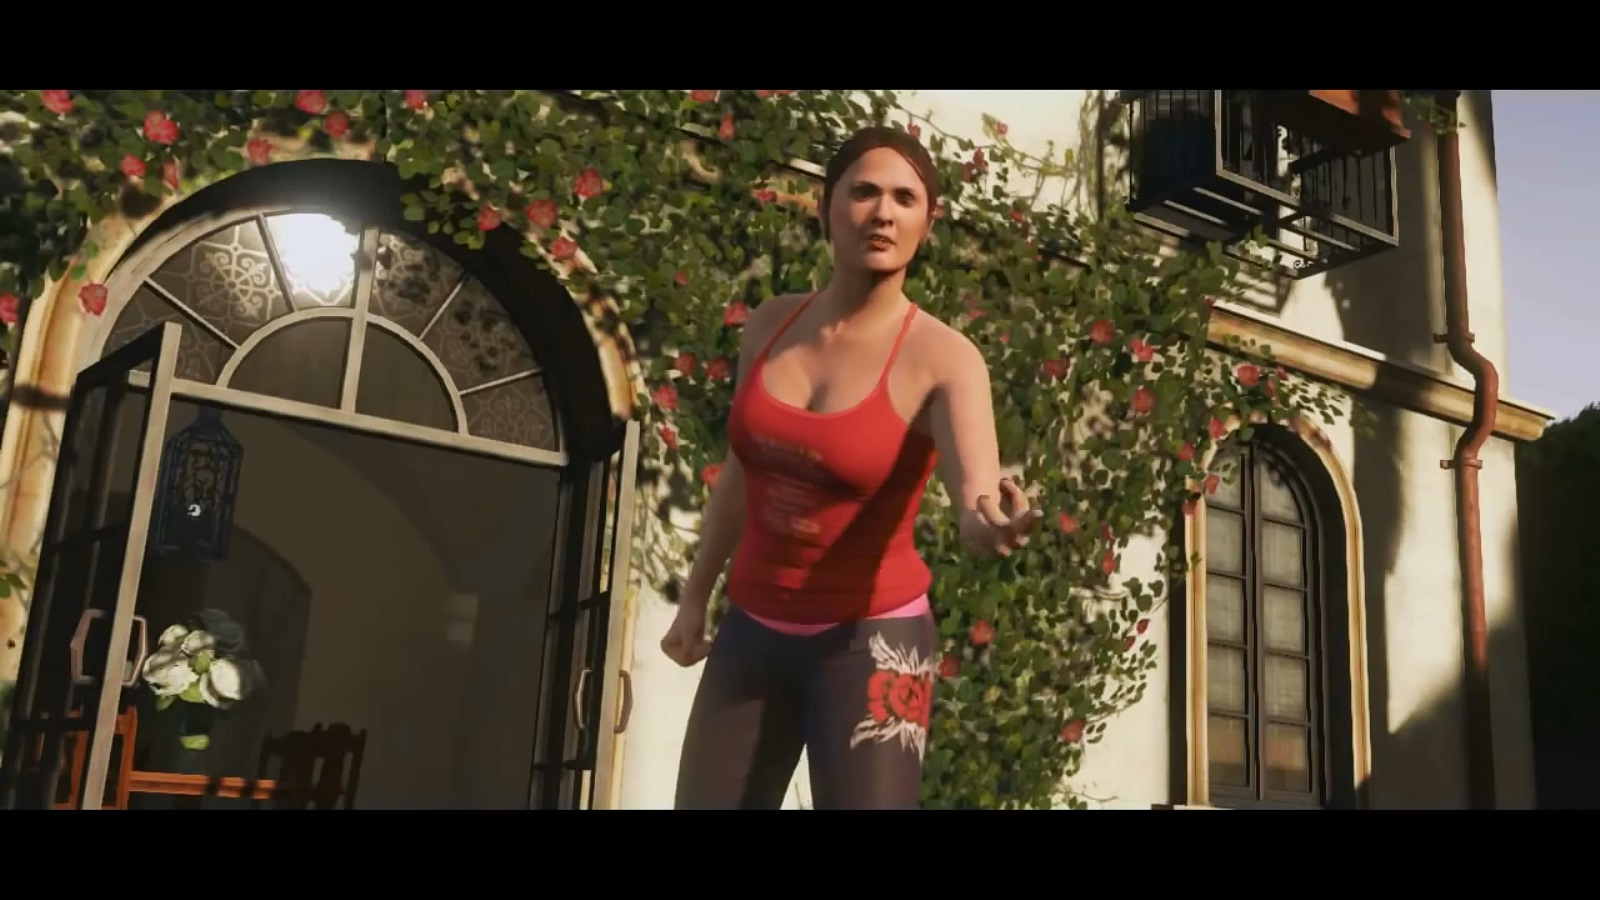 Gta 5 michaels wife porno hardcore image